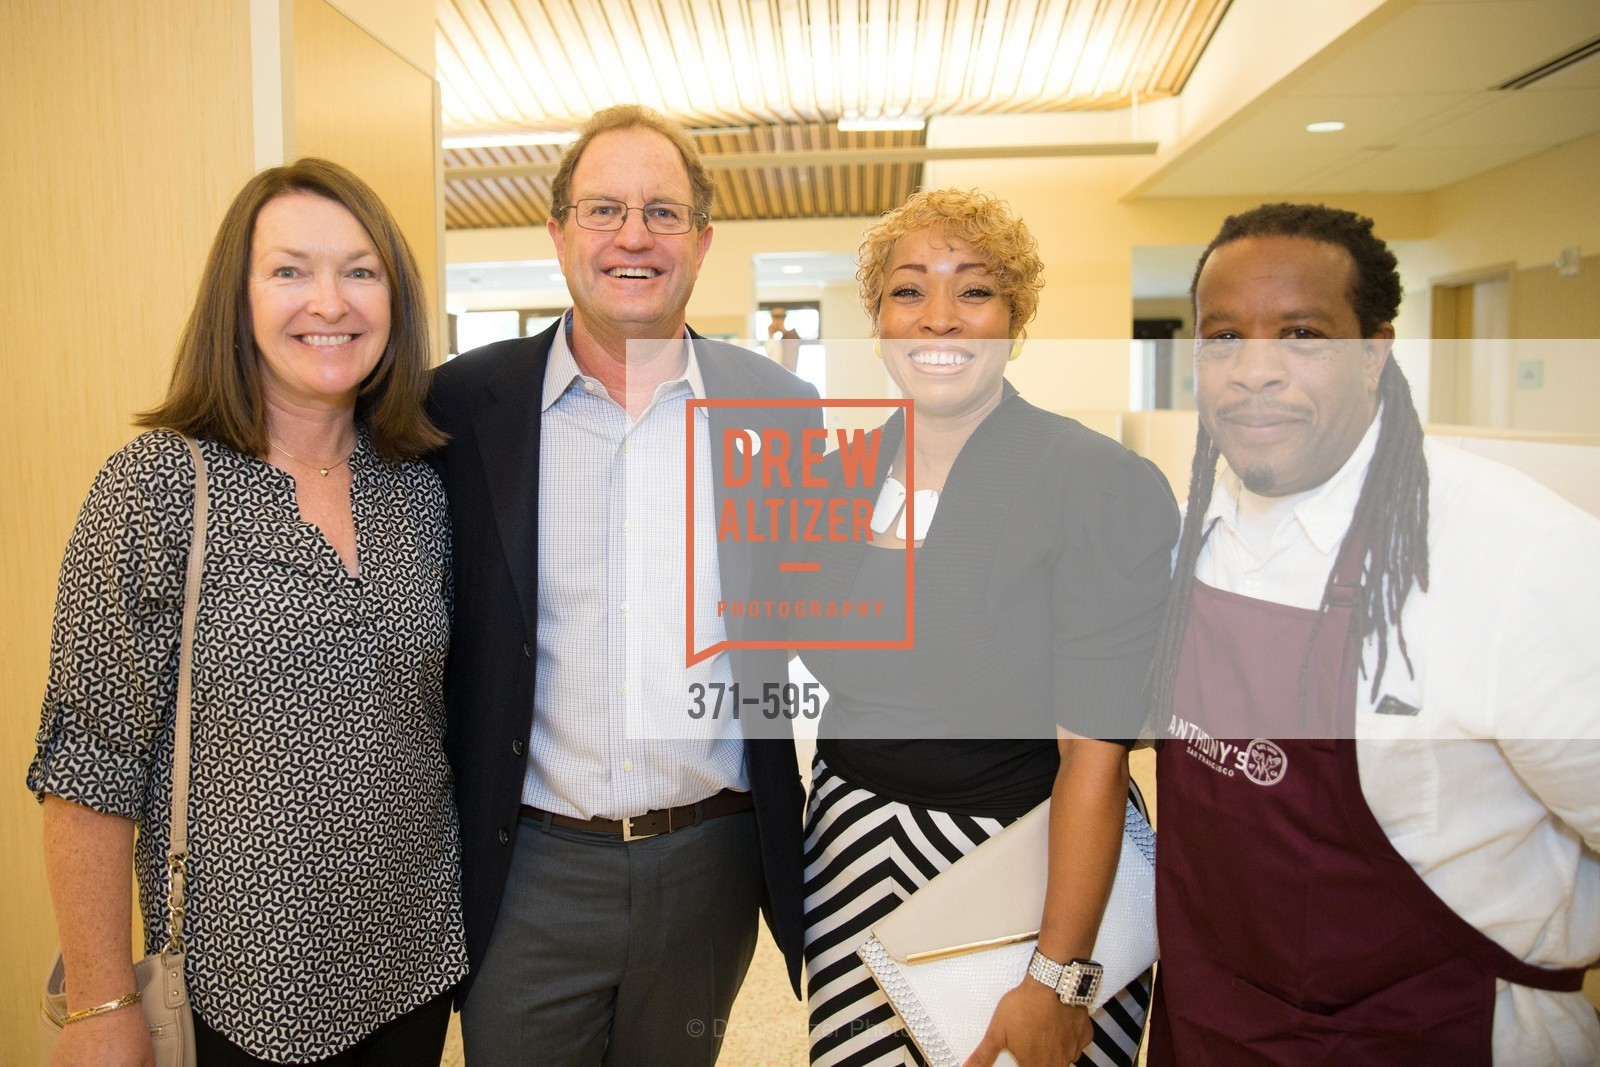 Anne Parish, Michael Parish, Karen Hopper, Tyrone Hopper, ST. ANTHONY'S Dining Room Ribbon Cutting Ceremony, US, October 5th, 2014,Drew Altizer, Drew Altizer Photography, full-service agency, private events, San Francisco photographer, photographer california